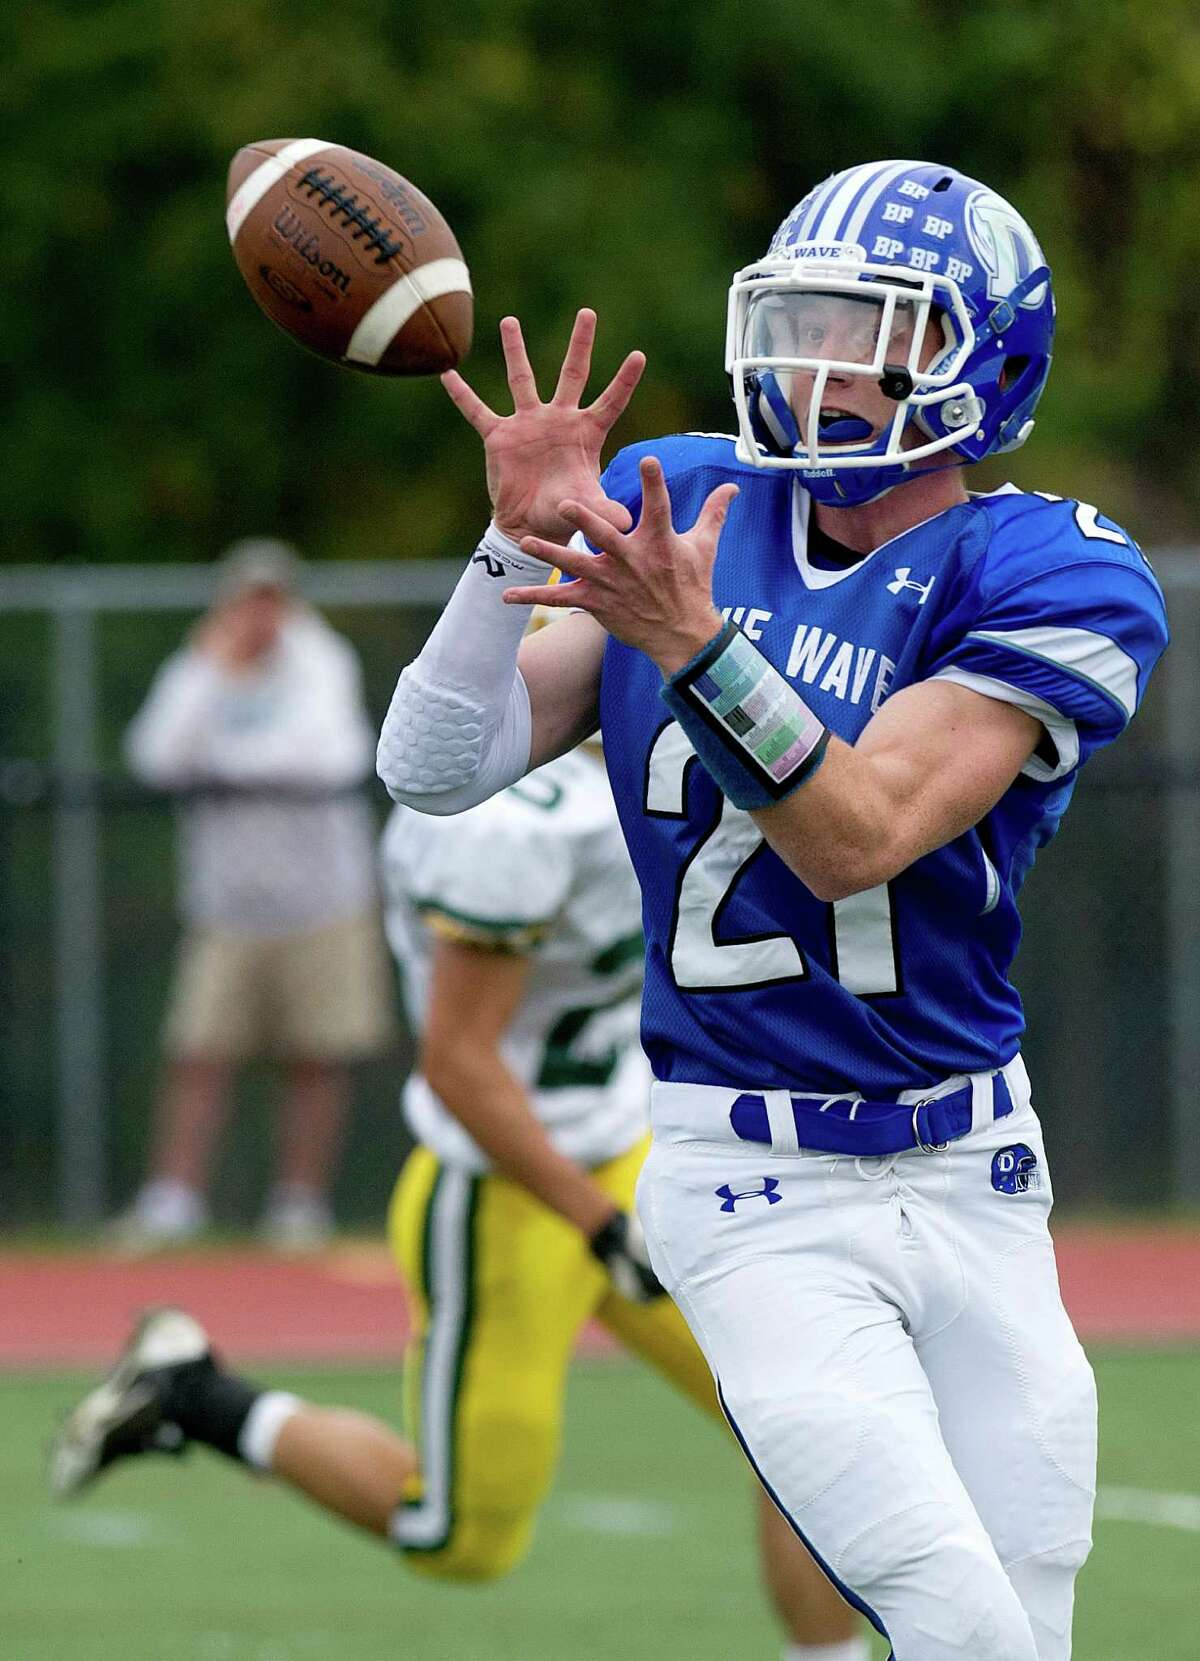 Darien's Nicholas Lombardo makes a catch and runs for a touchdown during Saturday's football game at Darien High School on October 19, 2013.